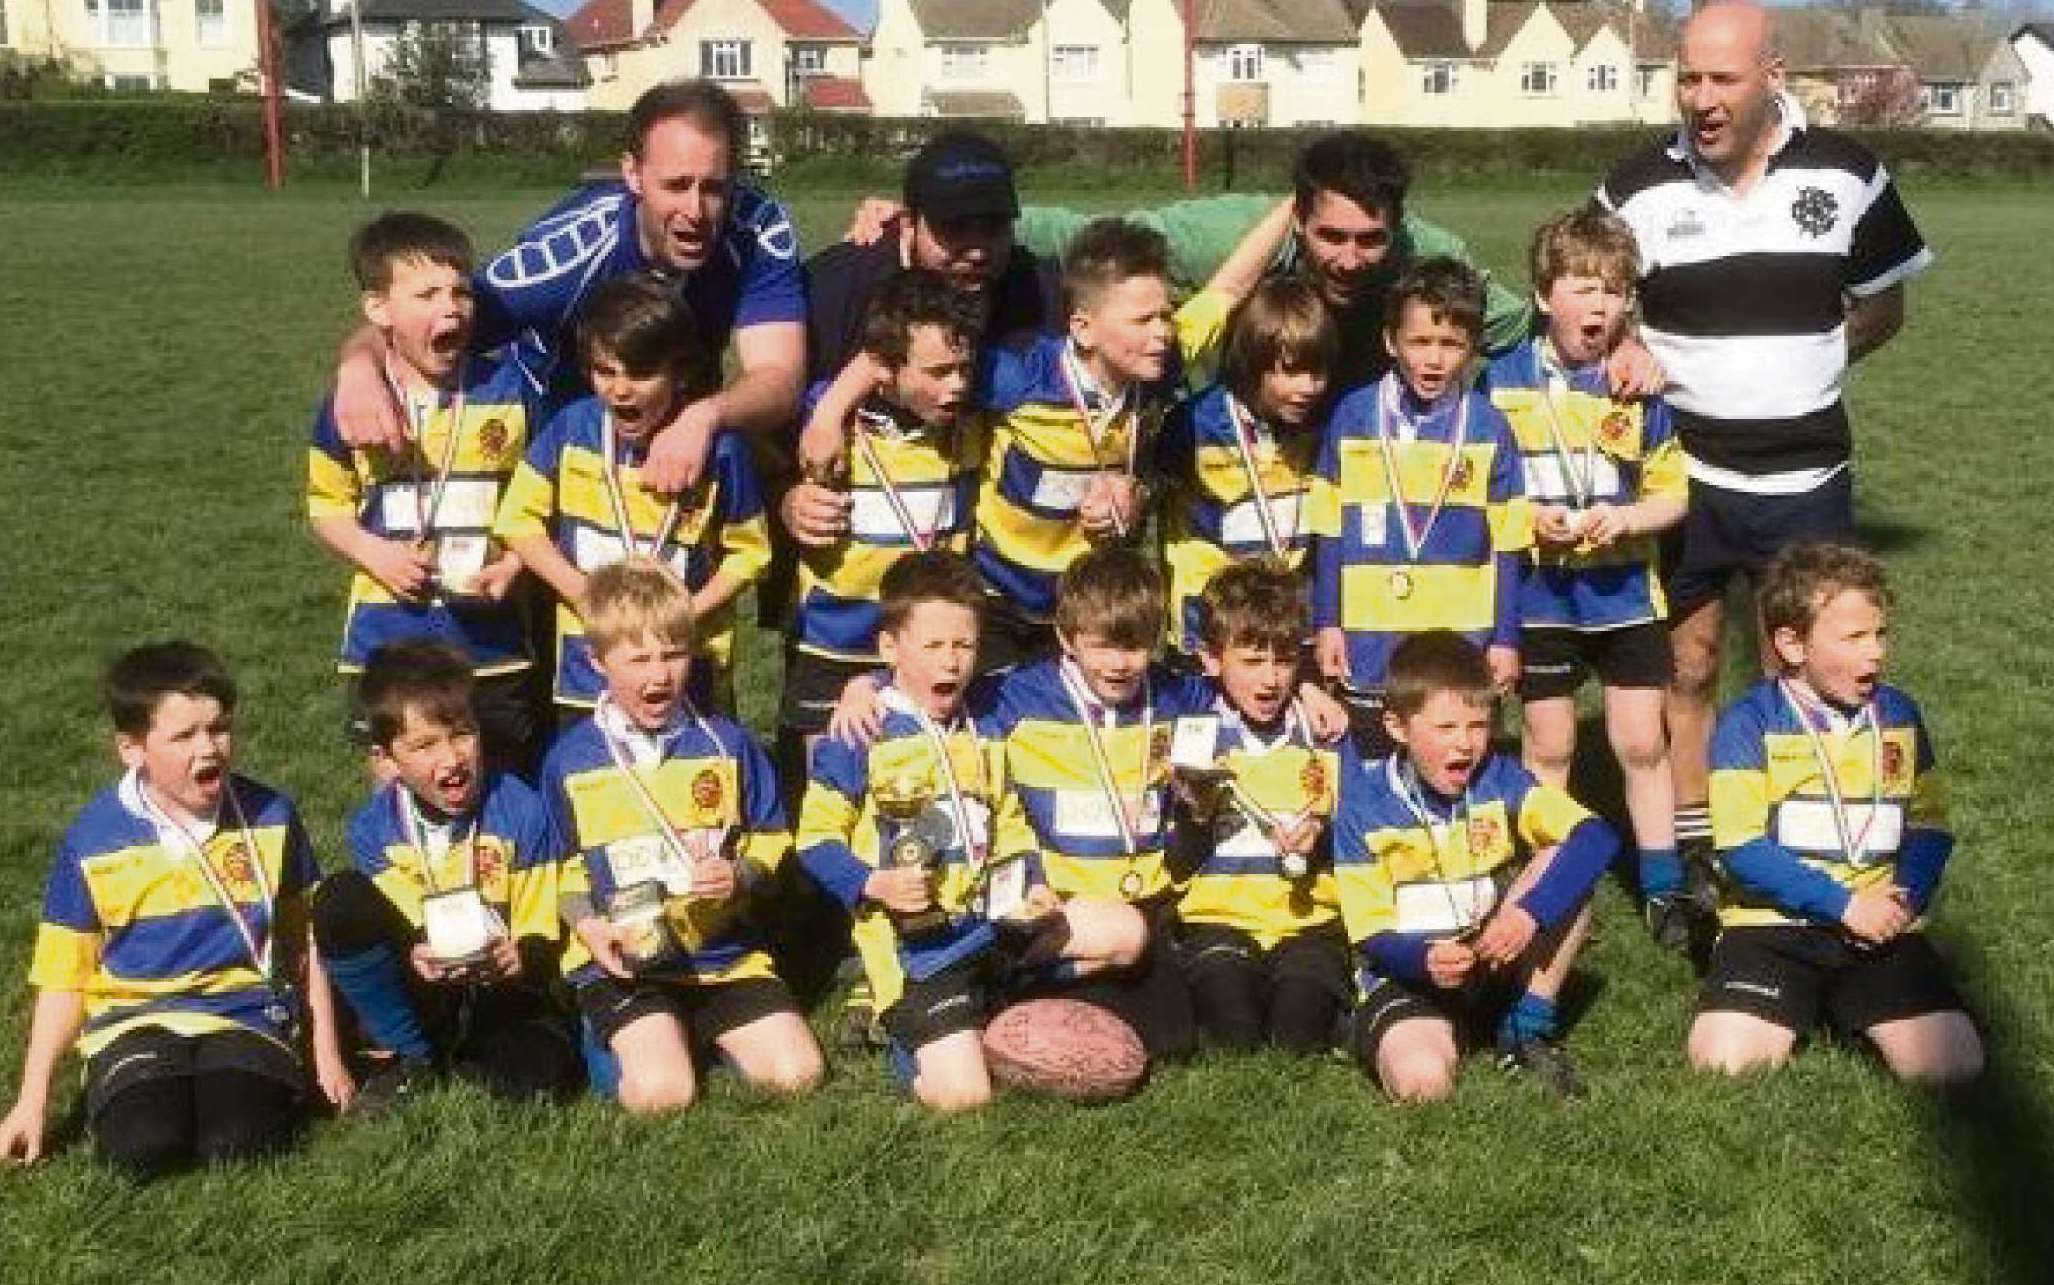 DOUBLE TRIUMPH: Some of the Old Penarthians' Titans and coaching team after the cup and plate victory  in the Cardiff and Vale U7s district tournament.